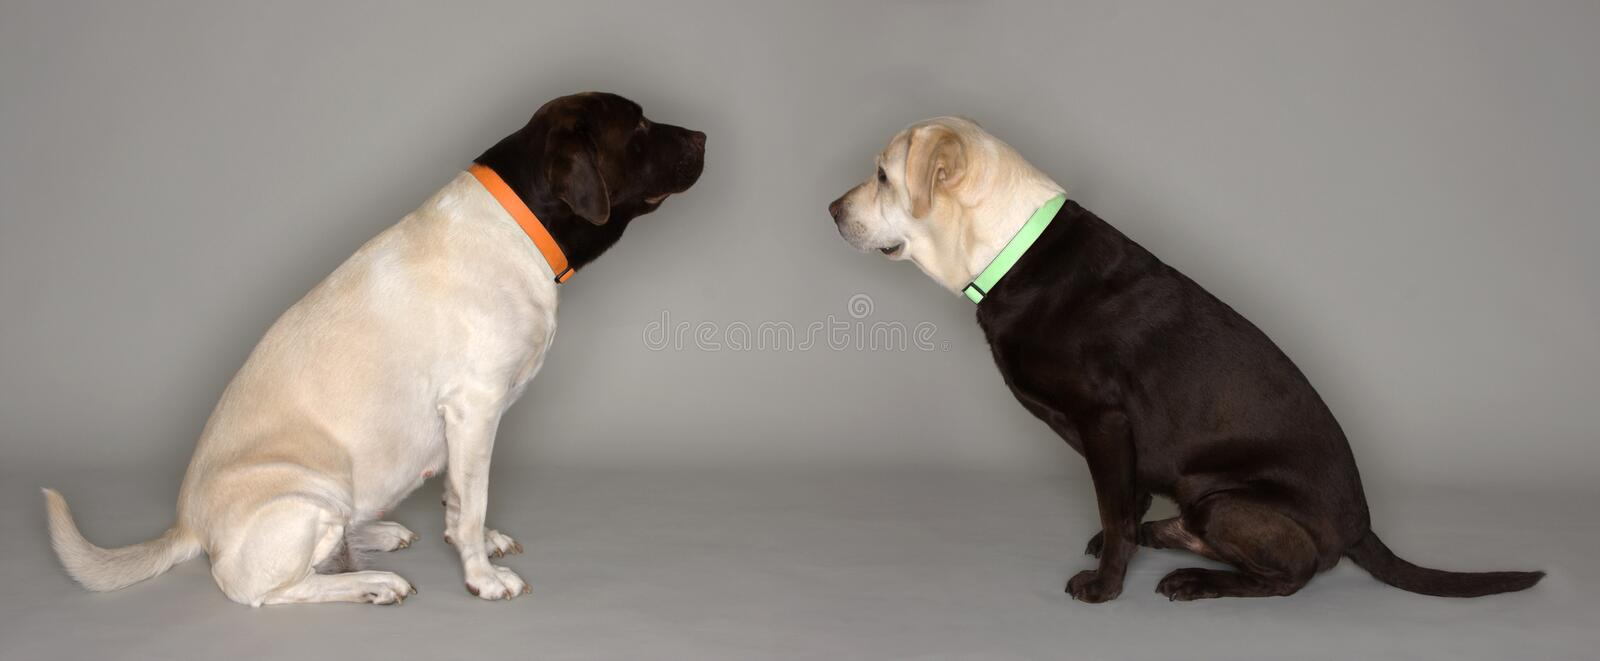 Download Two Dogs, Heads Swapped stock image. Image of cross, furry - 5339199